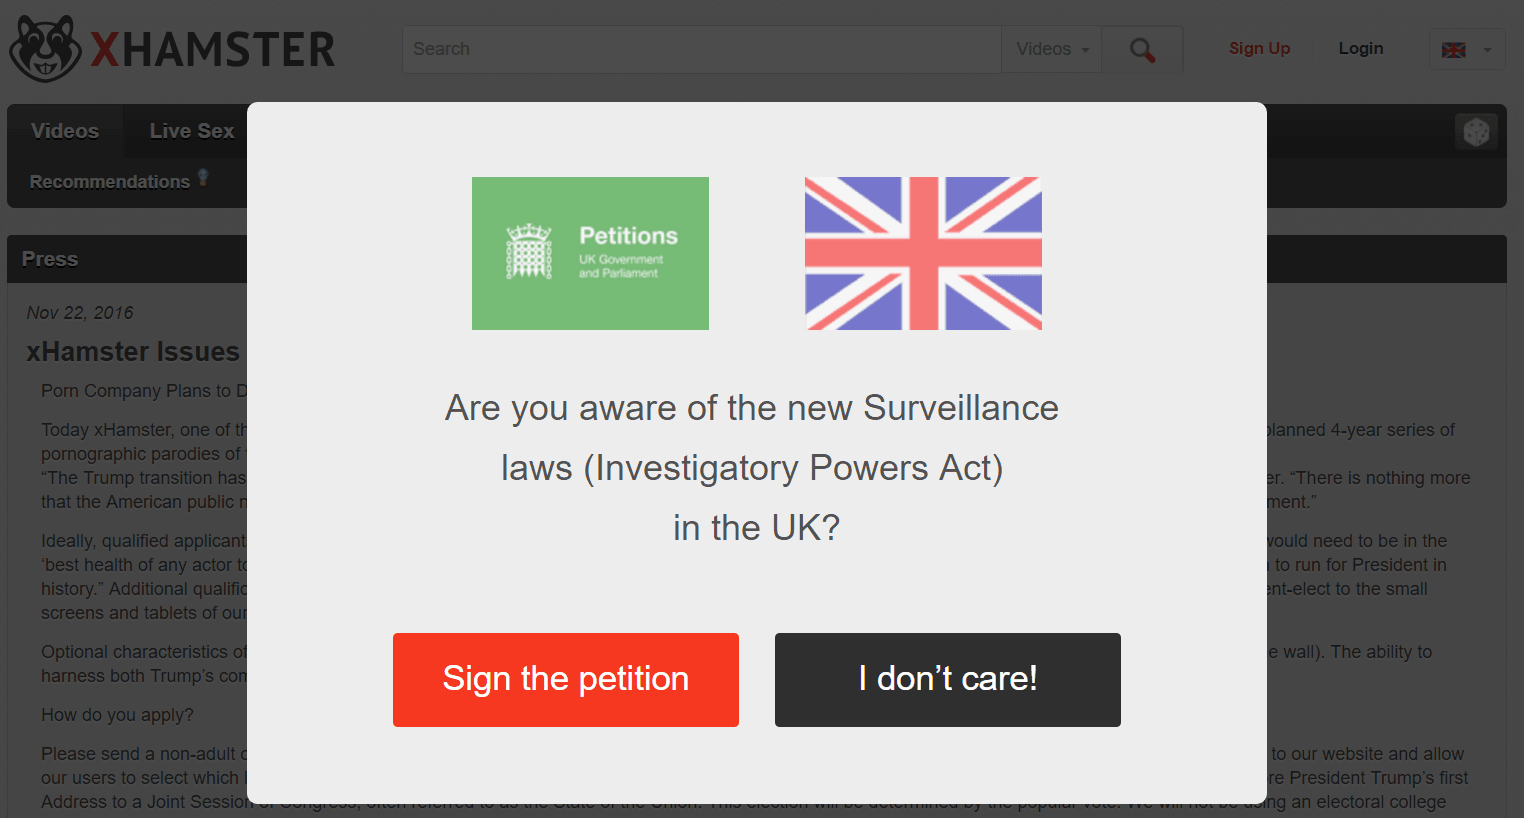 Porn site xHamster is very worried about the Investigatory Powers bill